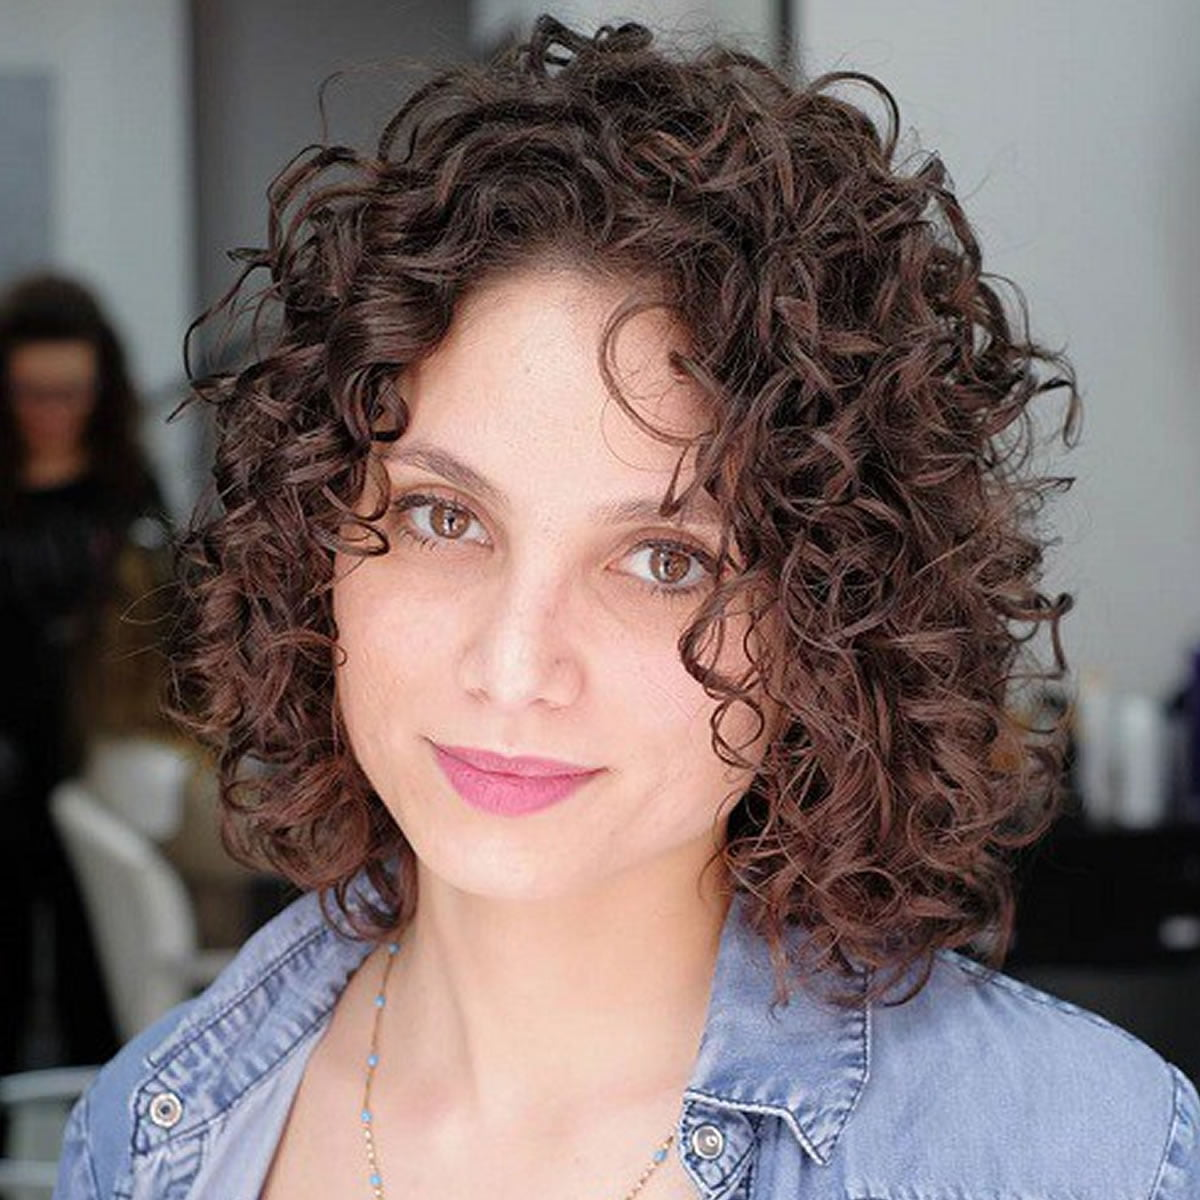 Curly Bob Hairstyles for Women Autumn